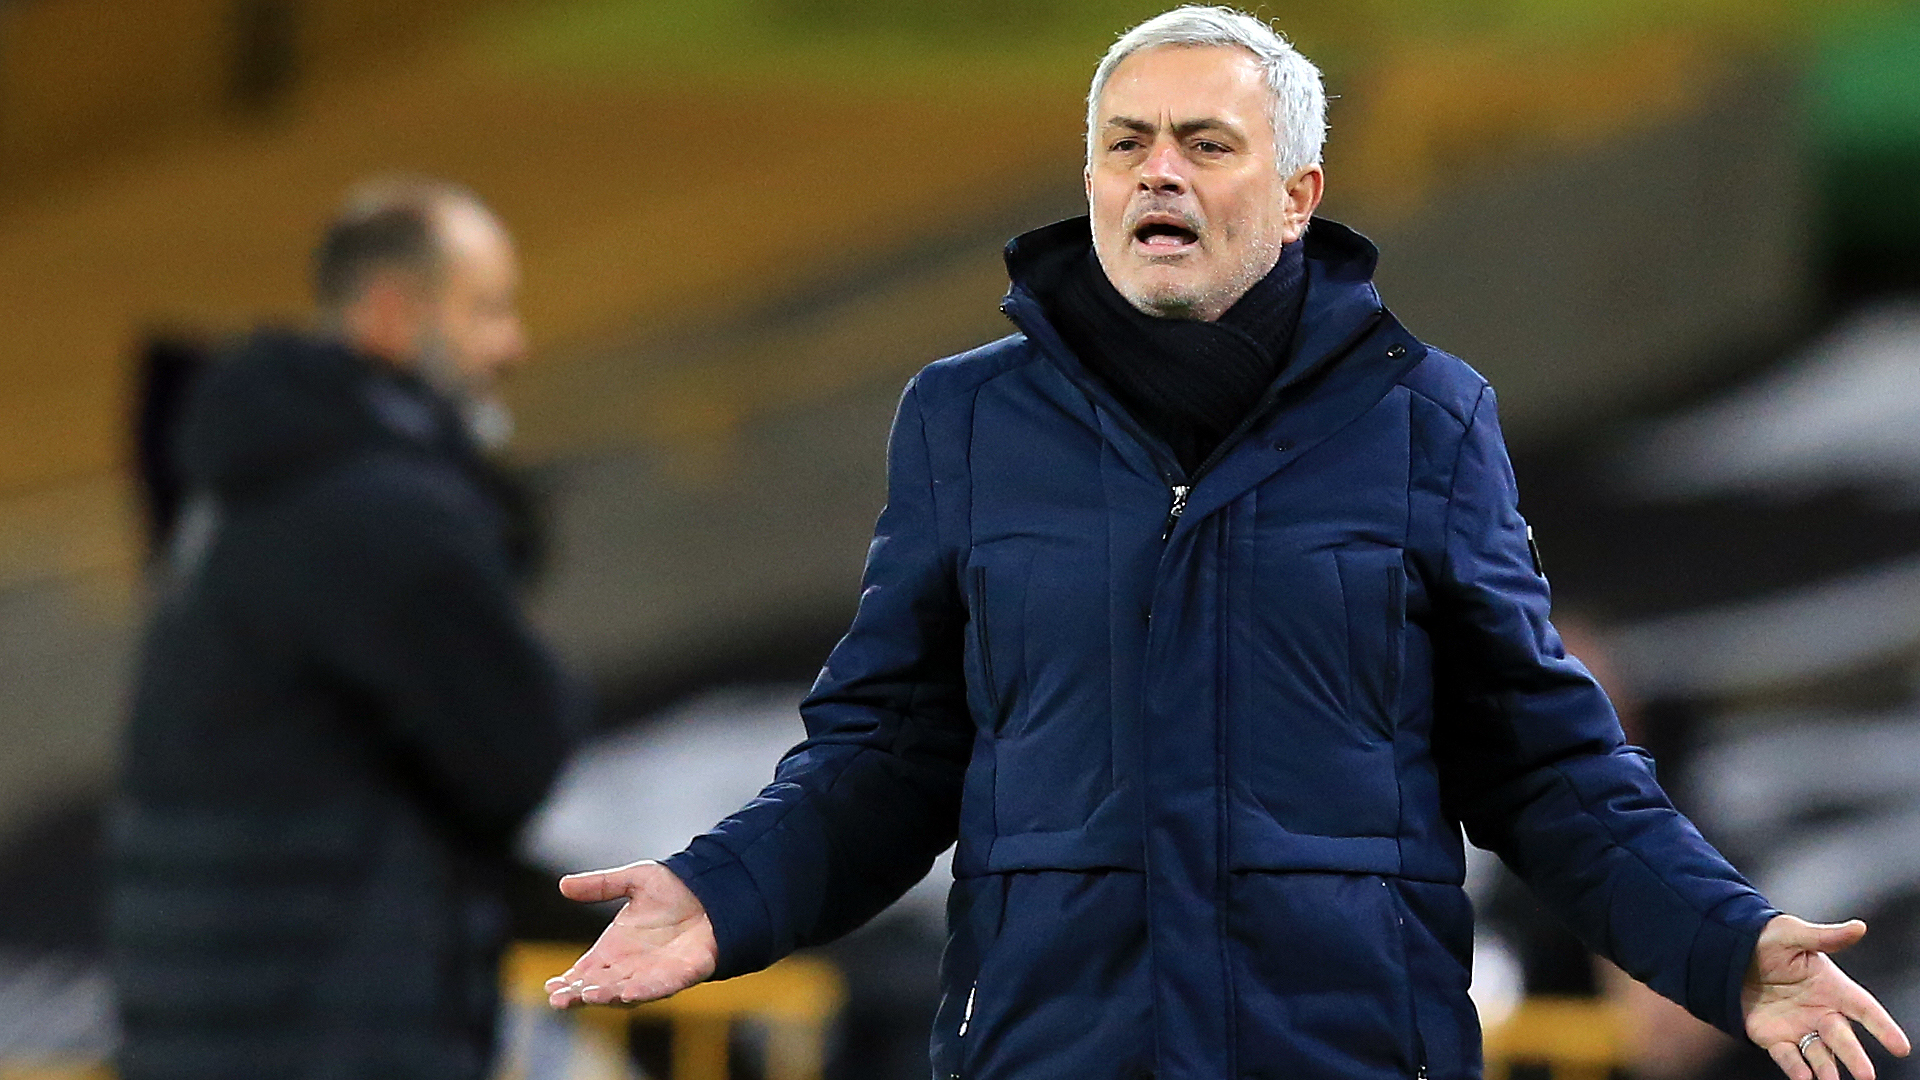 'Best league in the world' - Mourinho mocks Premier League as Spurs were left in dark over Fulham postponement